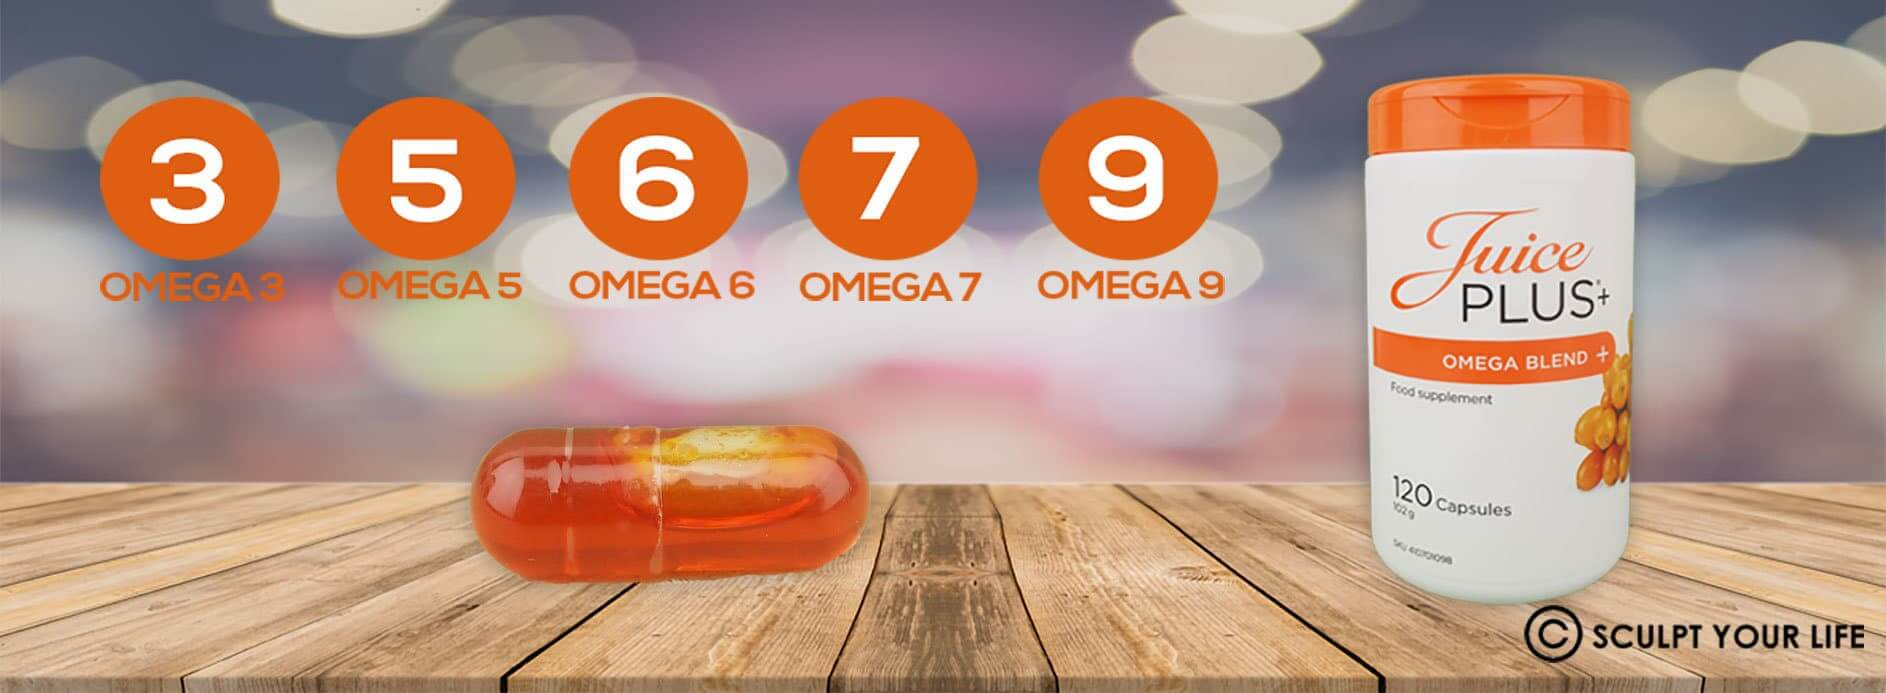 Number of Omegas in Juice Plus Omega Capsules